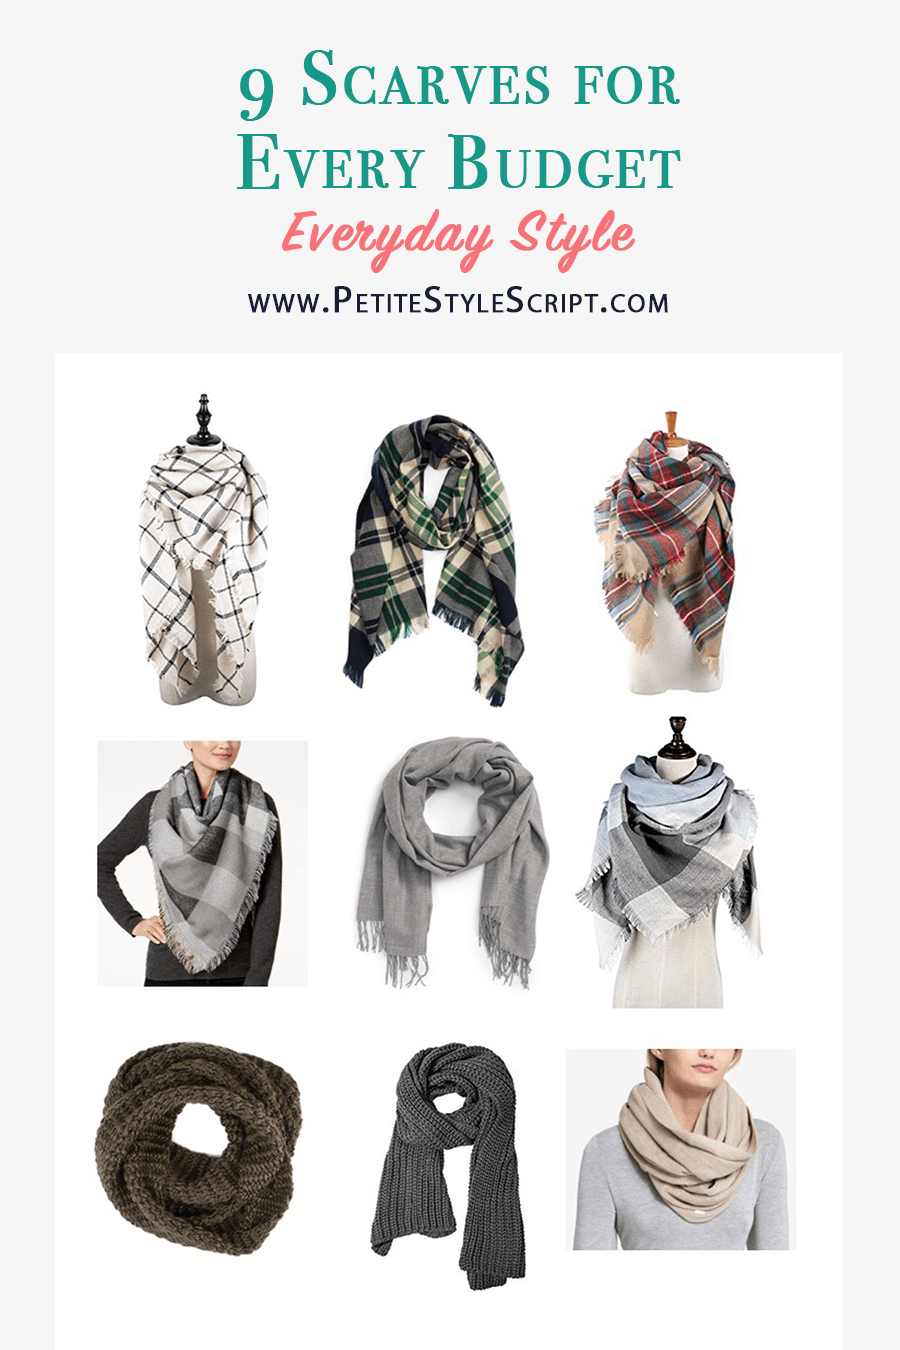 9 affordable scarf options, How to Style Winter Scarves | How to style blanket scarves | scarf tutorial video | Infinity scarf review | Krochet kids | Nordstrom tissue scarf review | Nordstrom Sole Society blanket scarf | plaid windowpane scarf | Banana republic wool camel black scarf | petite fashion and style blog